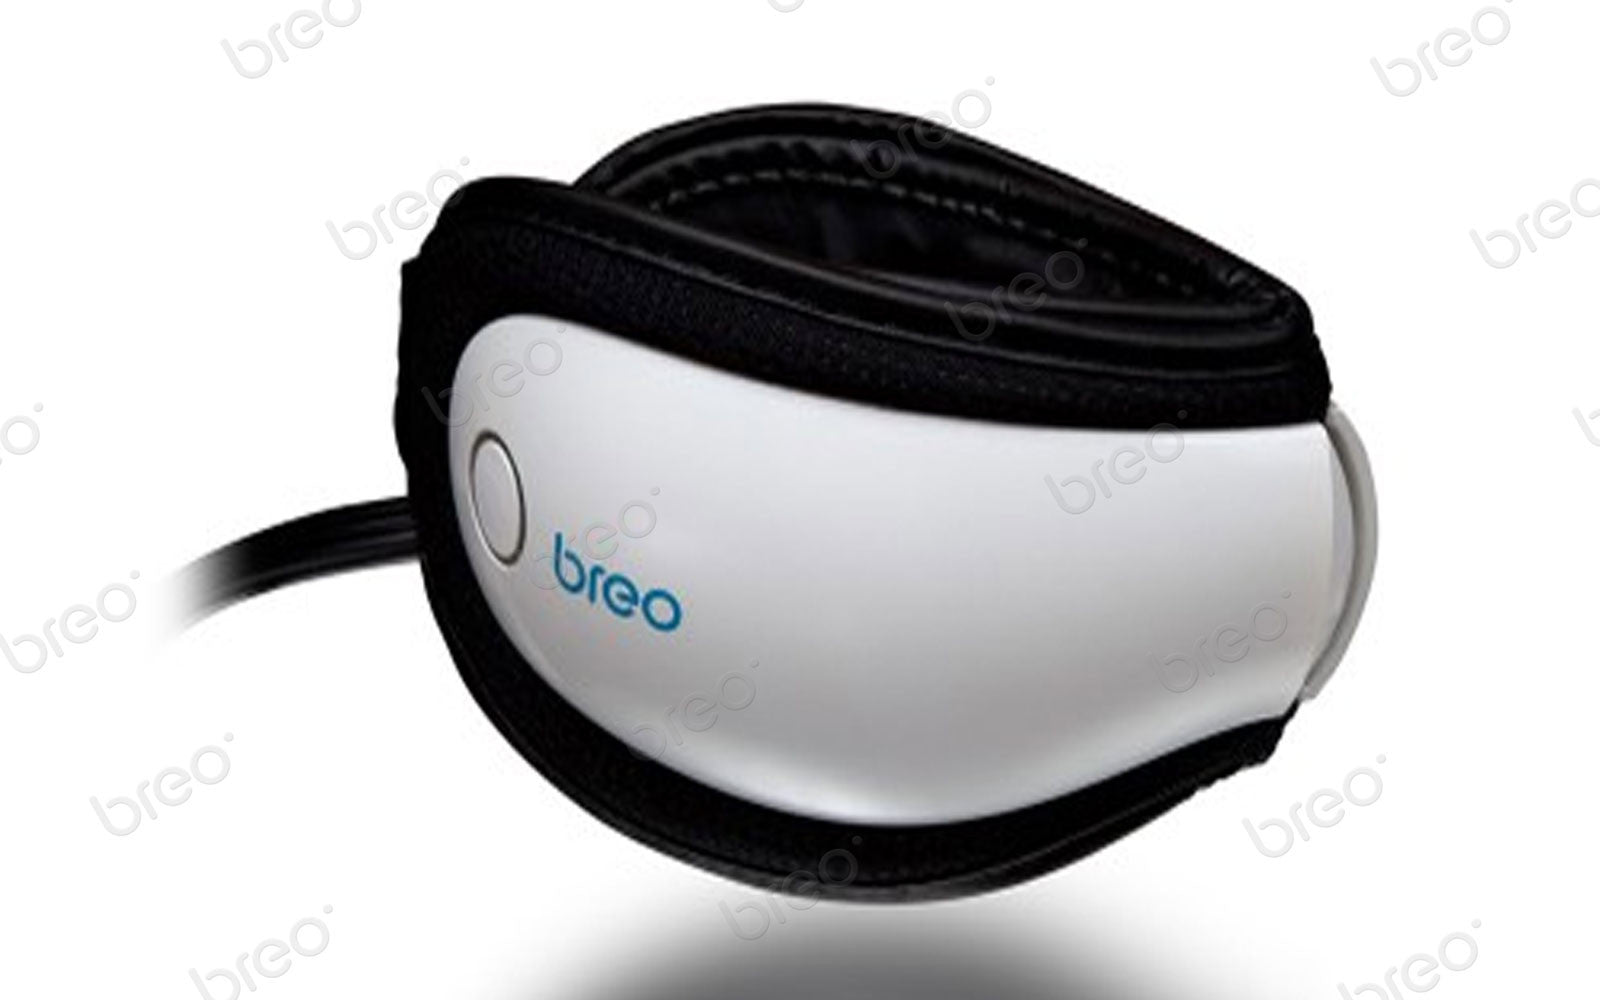 Breo iSee310 Eye Massager - Breo-USA